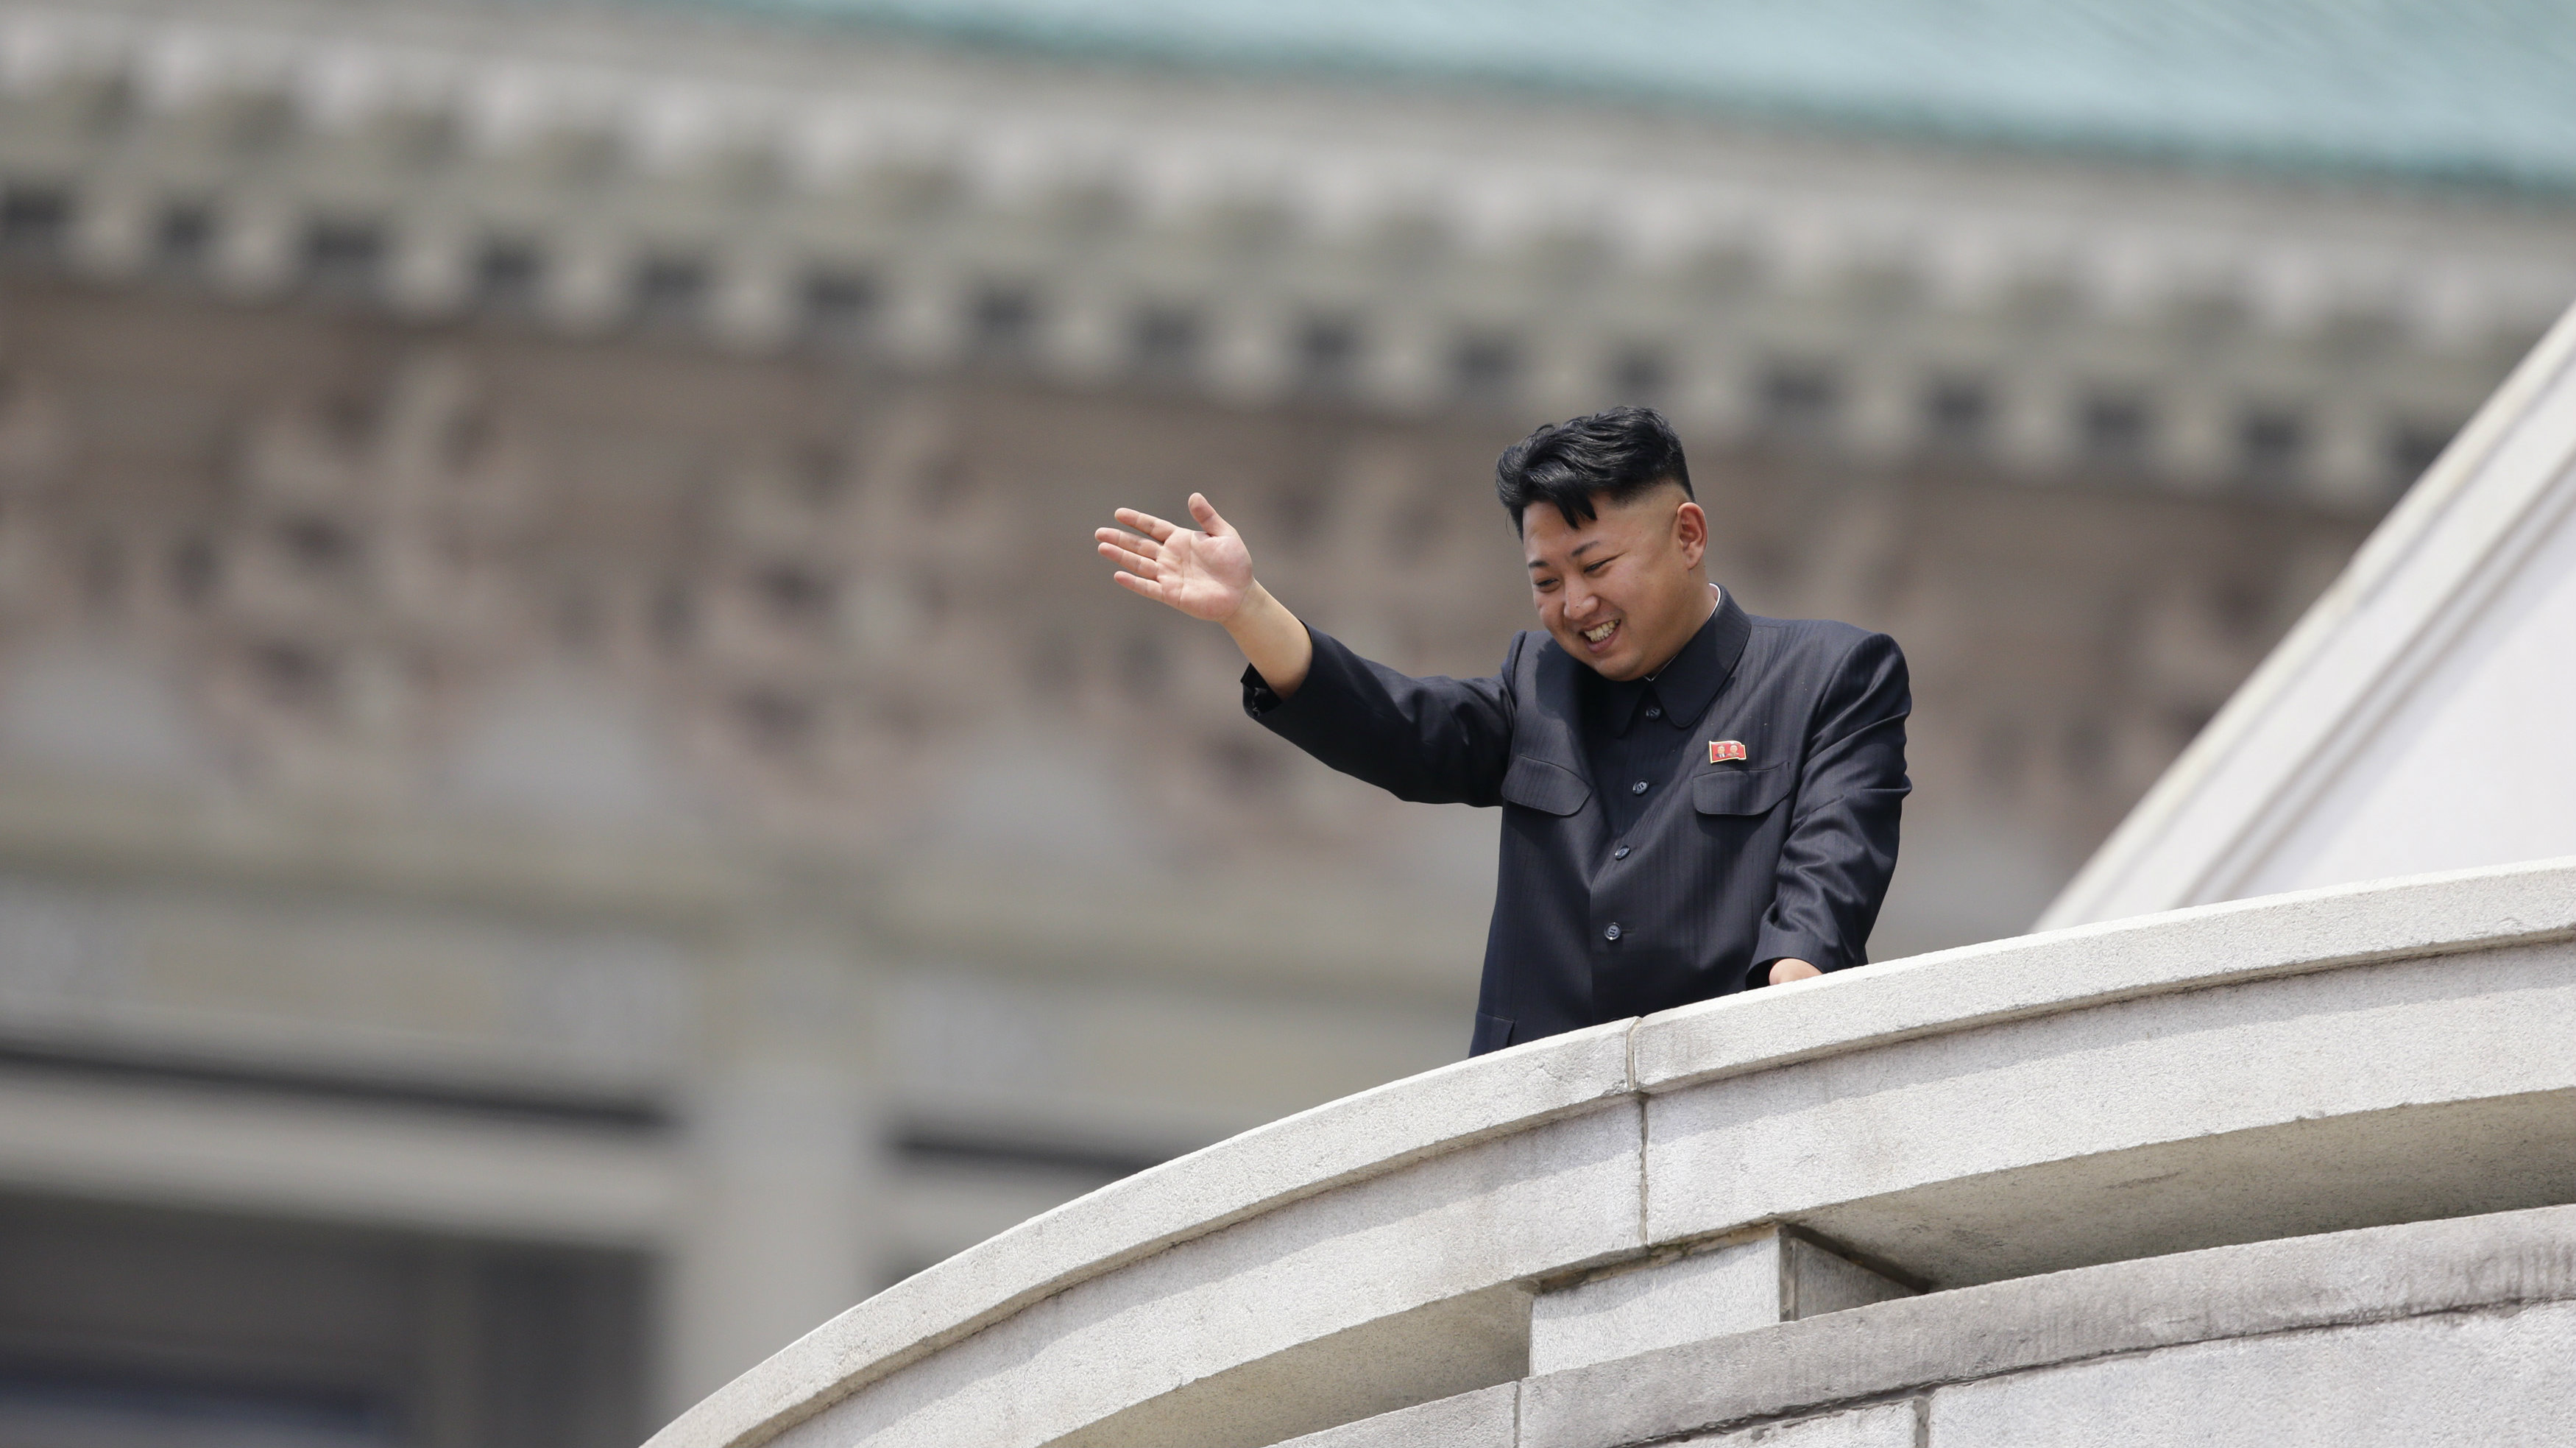 North Korean leader Kim Jong-un waves to the people during a parade in Pyongyang.